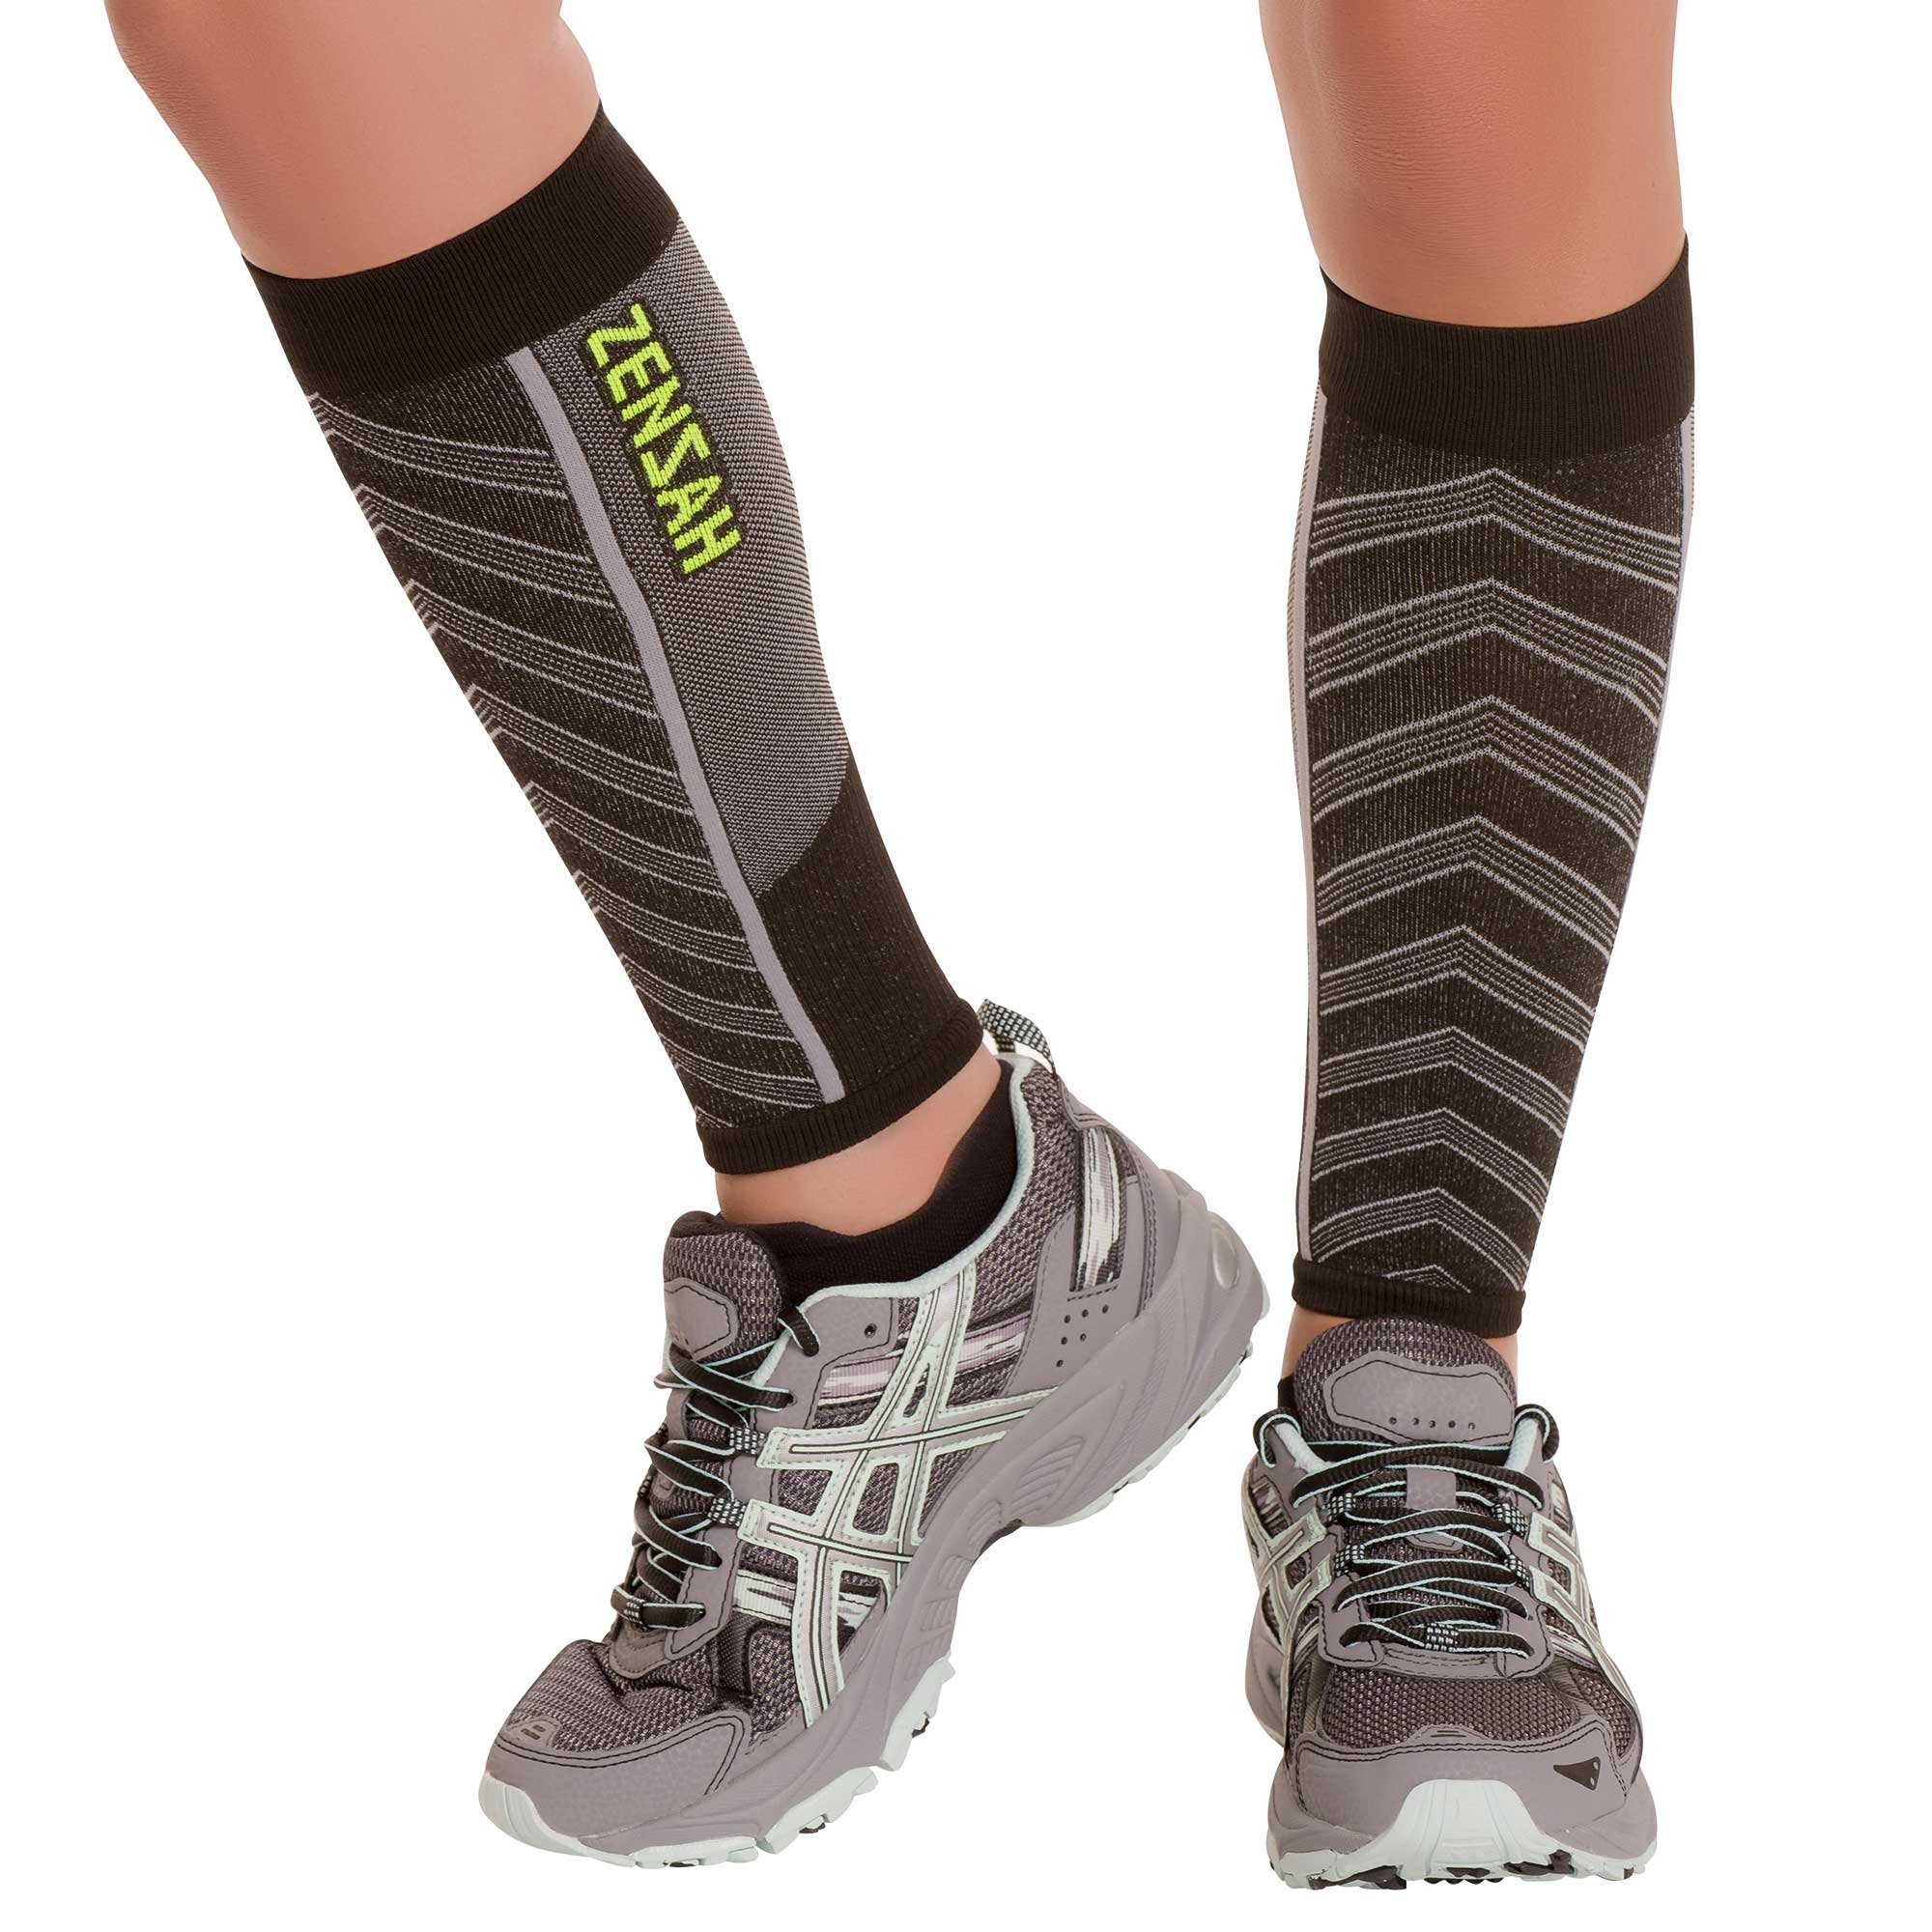 Featherweight Compression Leg Sleeves -Relieve Shin Splints (MD, Black) by Zensah